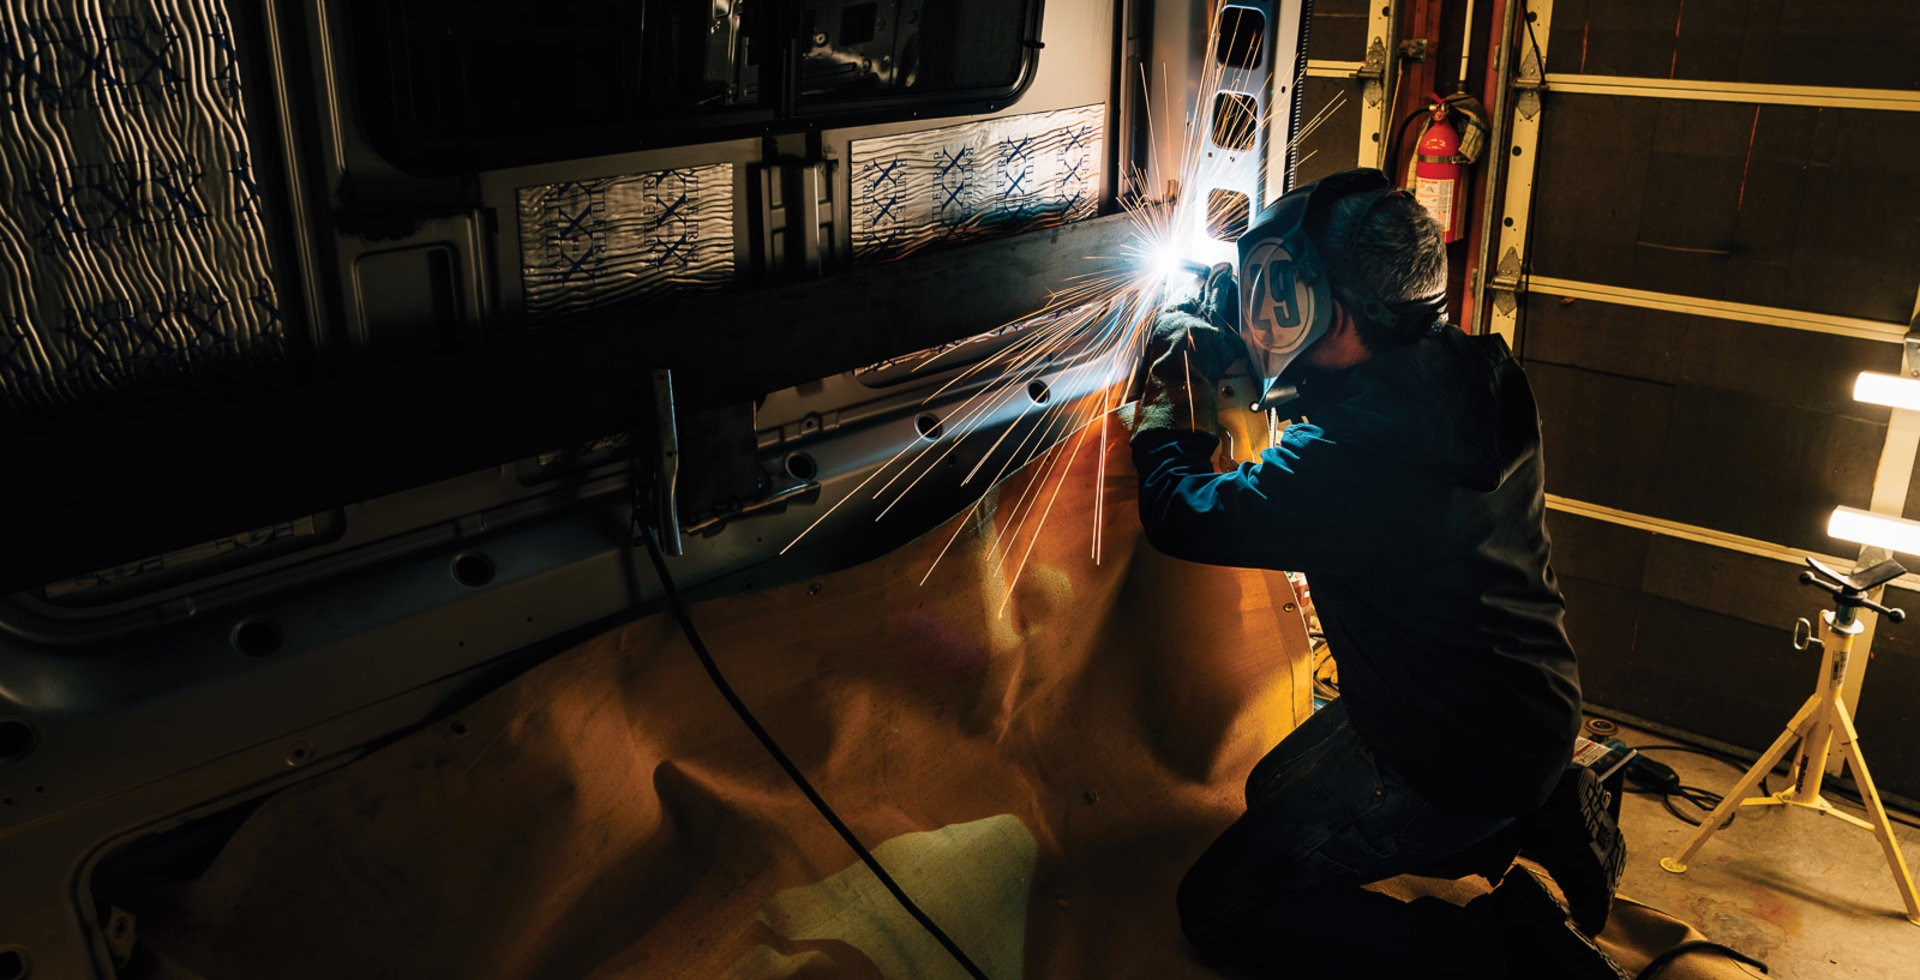 From routing and cutting to gluing and welding, the list of tools required for a full-scale buildout is not short. Tyler Earnheart puts in some late night hours on Jill and Bryn's van.